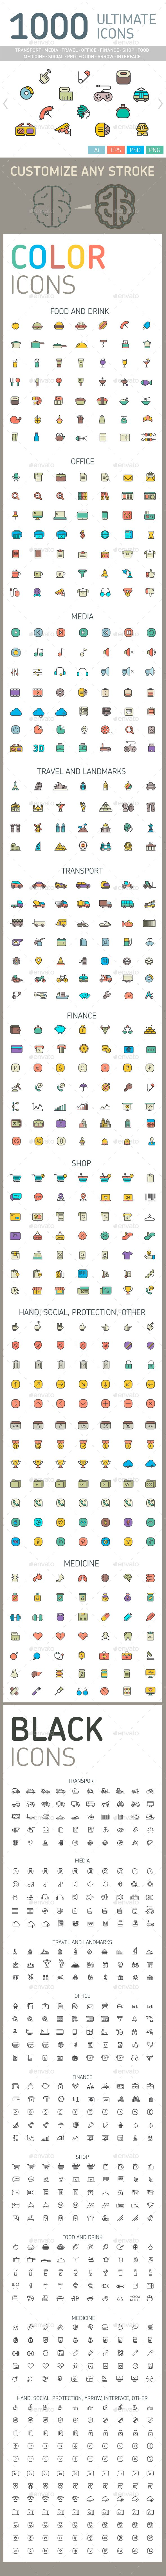 1000 Ultimate line icons. Download here: http://graphicriver.net/item/1000-ultimate-line-icons/14882899?ref=ksioks